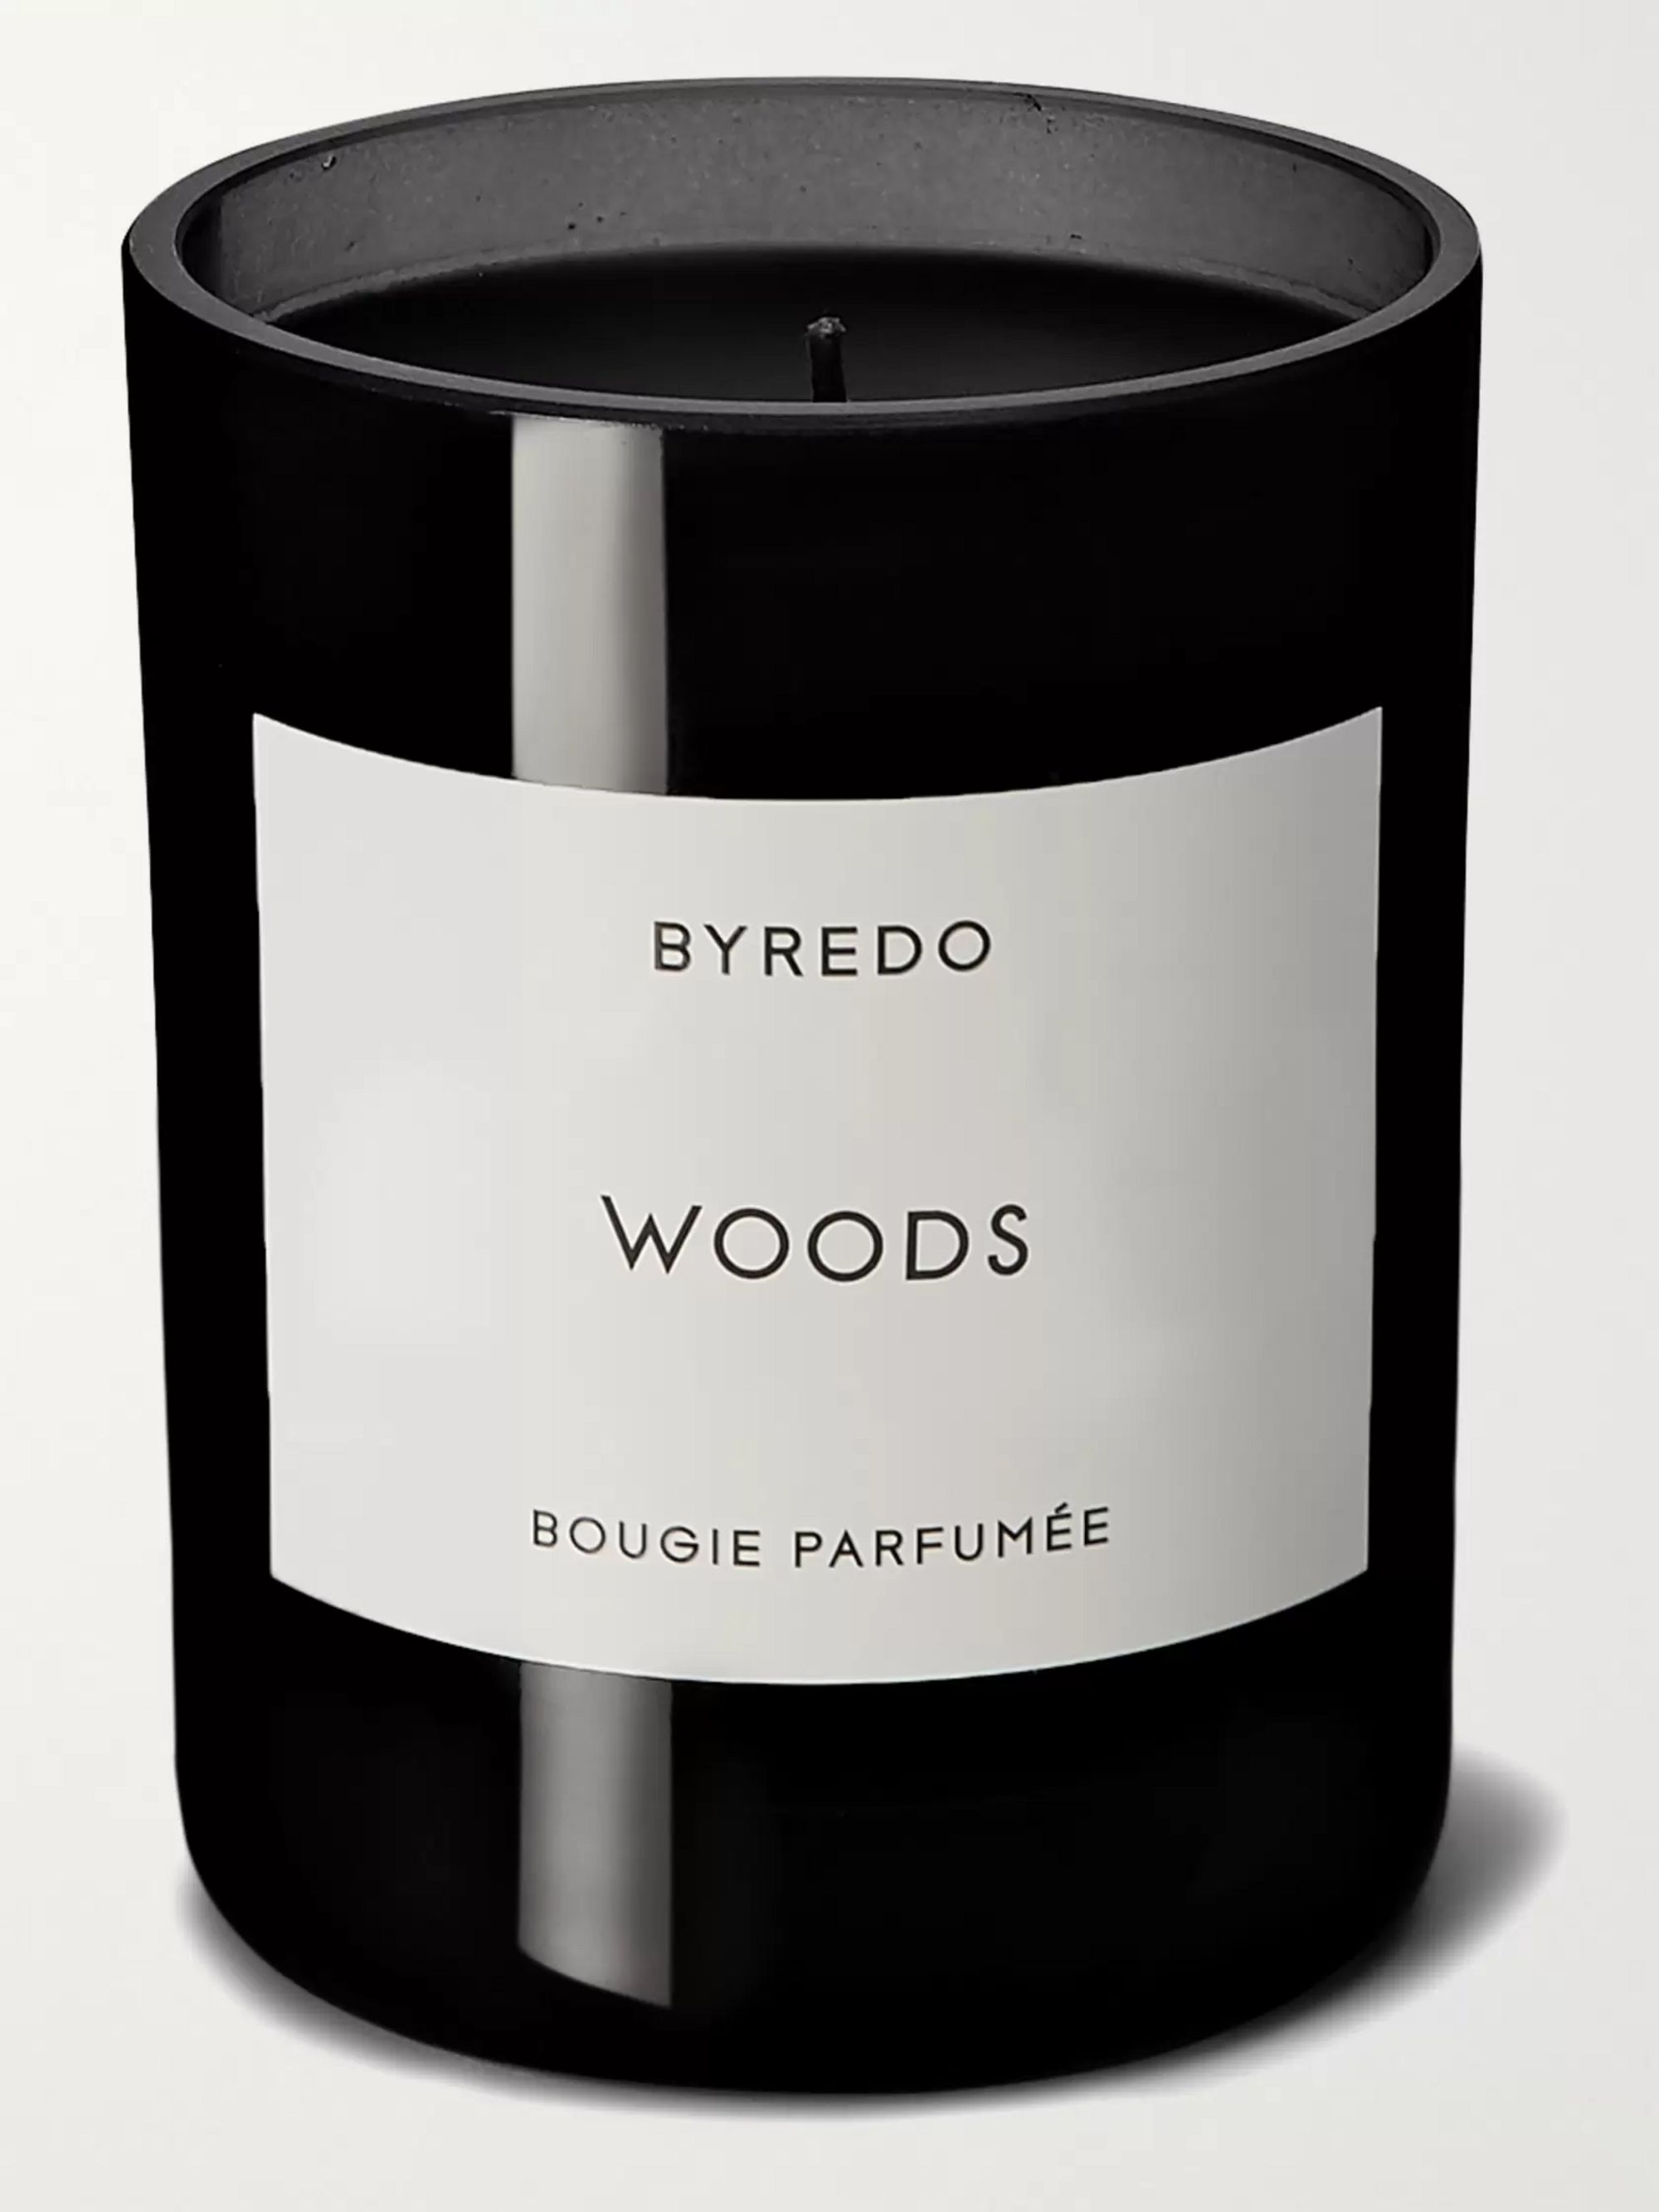 바이레도 캔들 Byredo Woods Scented Candle 240g